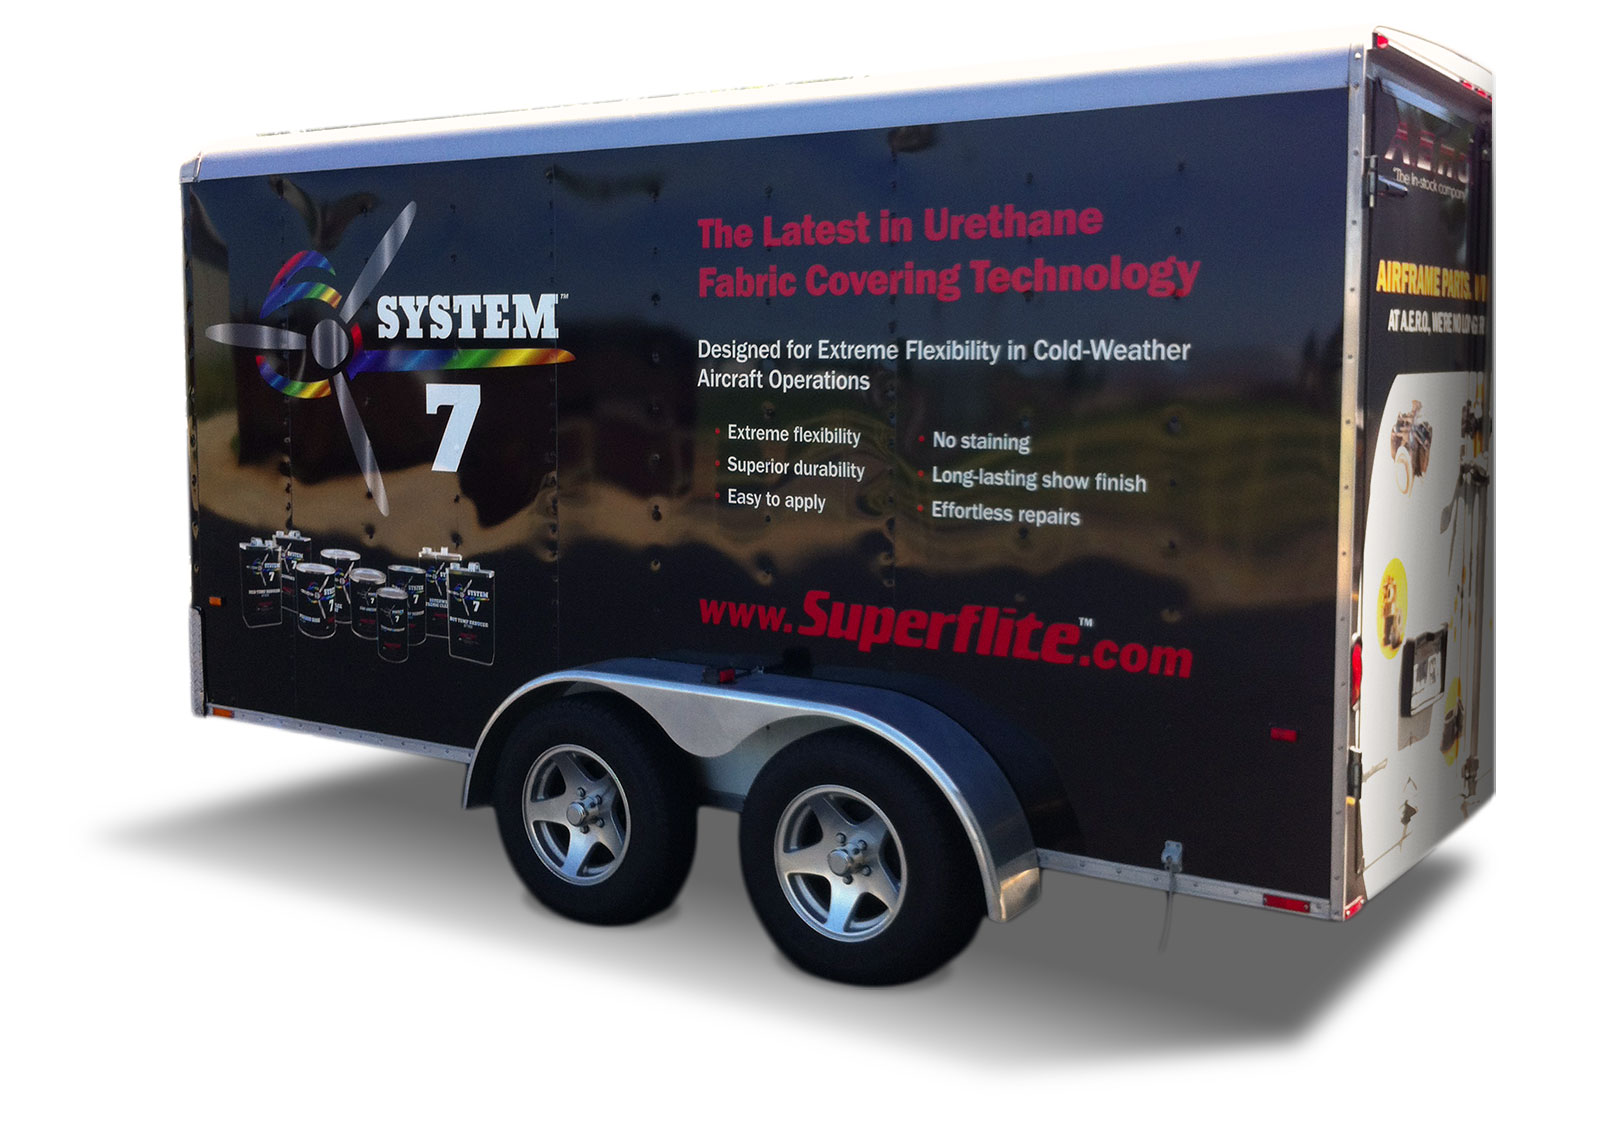 Image of a 20-foot trailer branded for the Superflite System 7 aircraft covering system